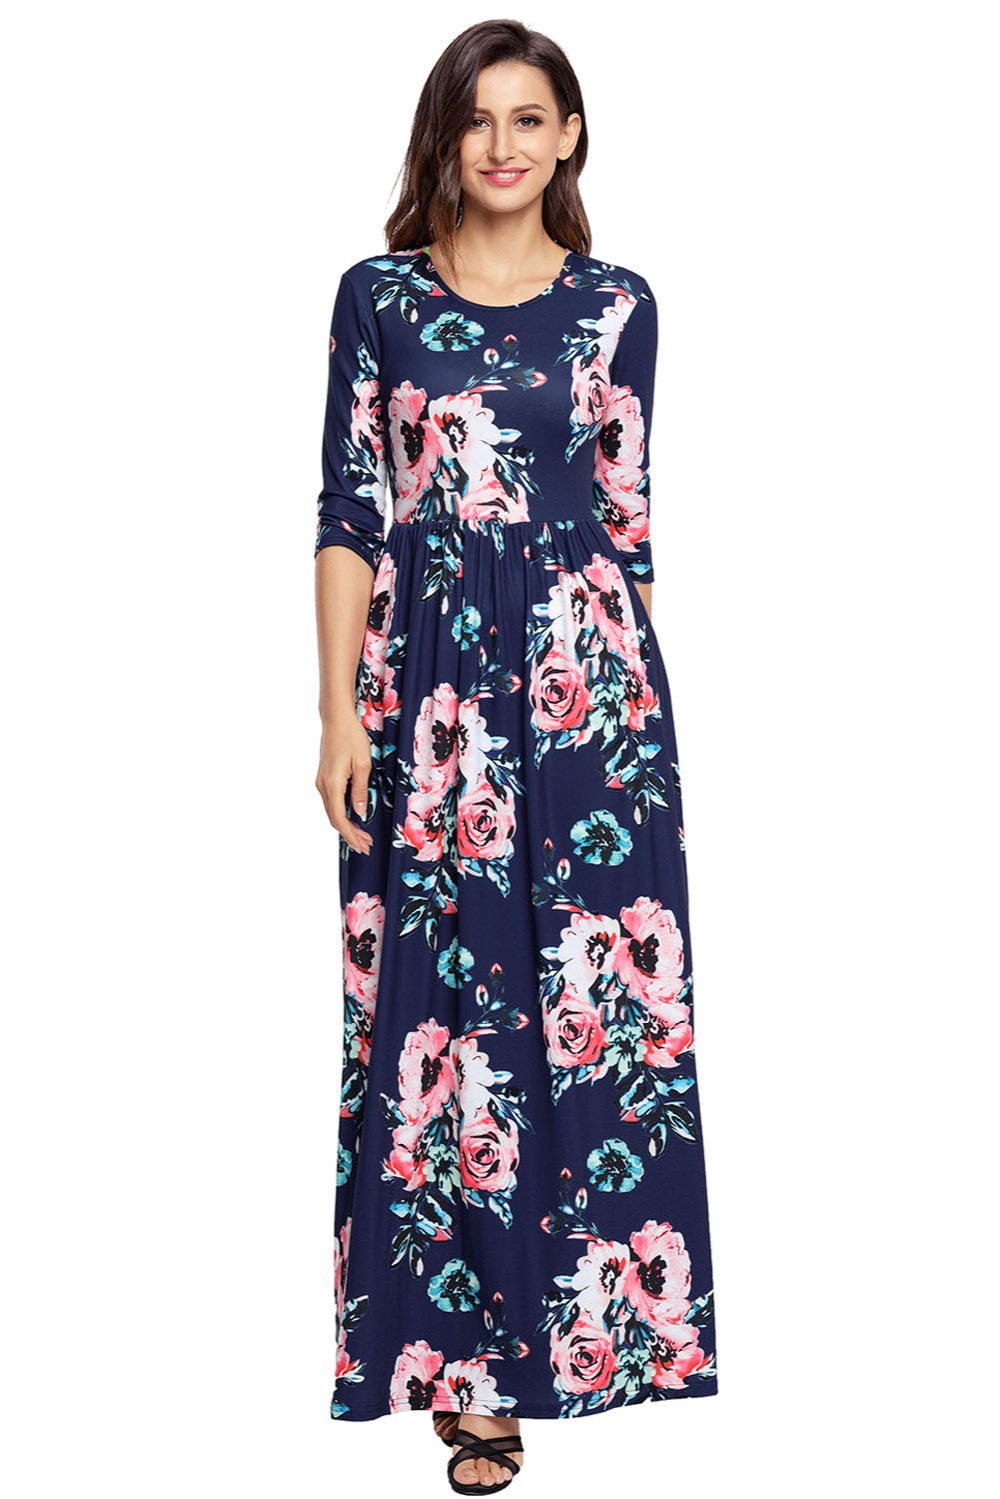 124a96eaa1 Women Autumn Classic Floral Print 3/4 Long Sleeve Maxi Dress Fashion Casual  Boho Pleated Plus Size XXL Dresses With Pockets